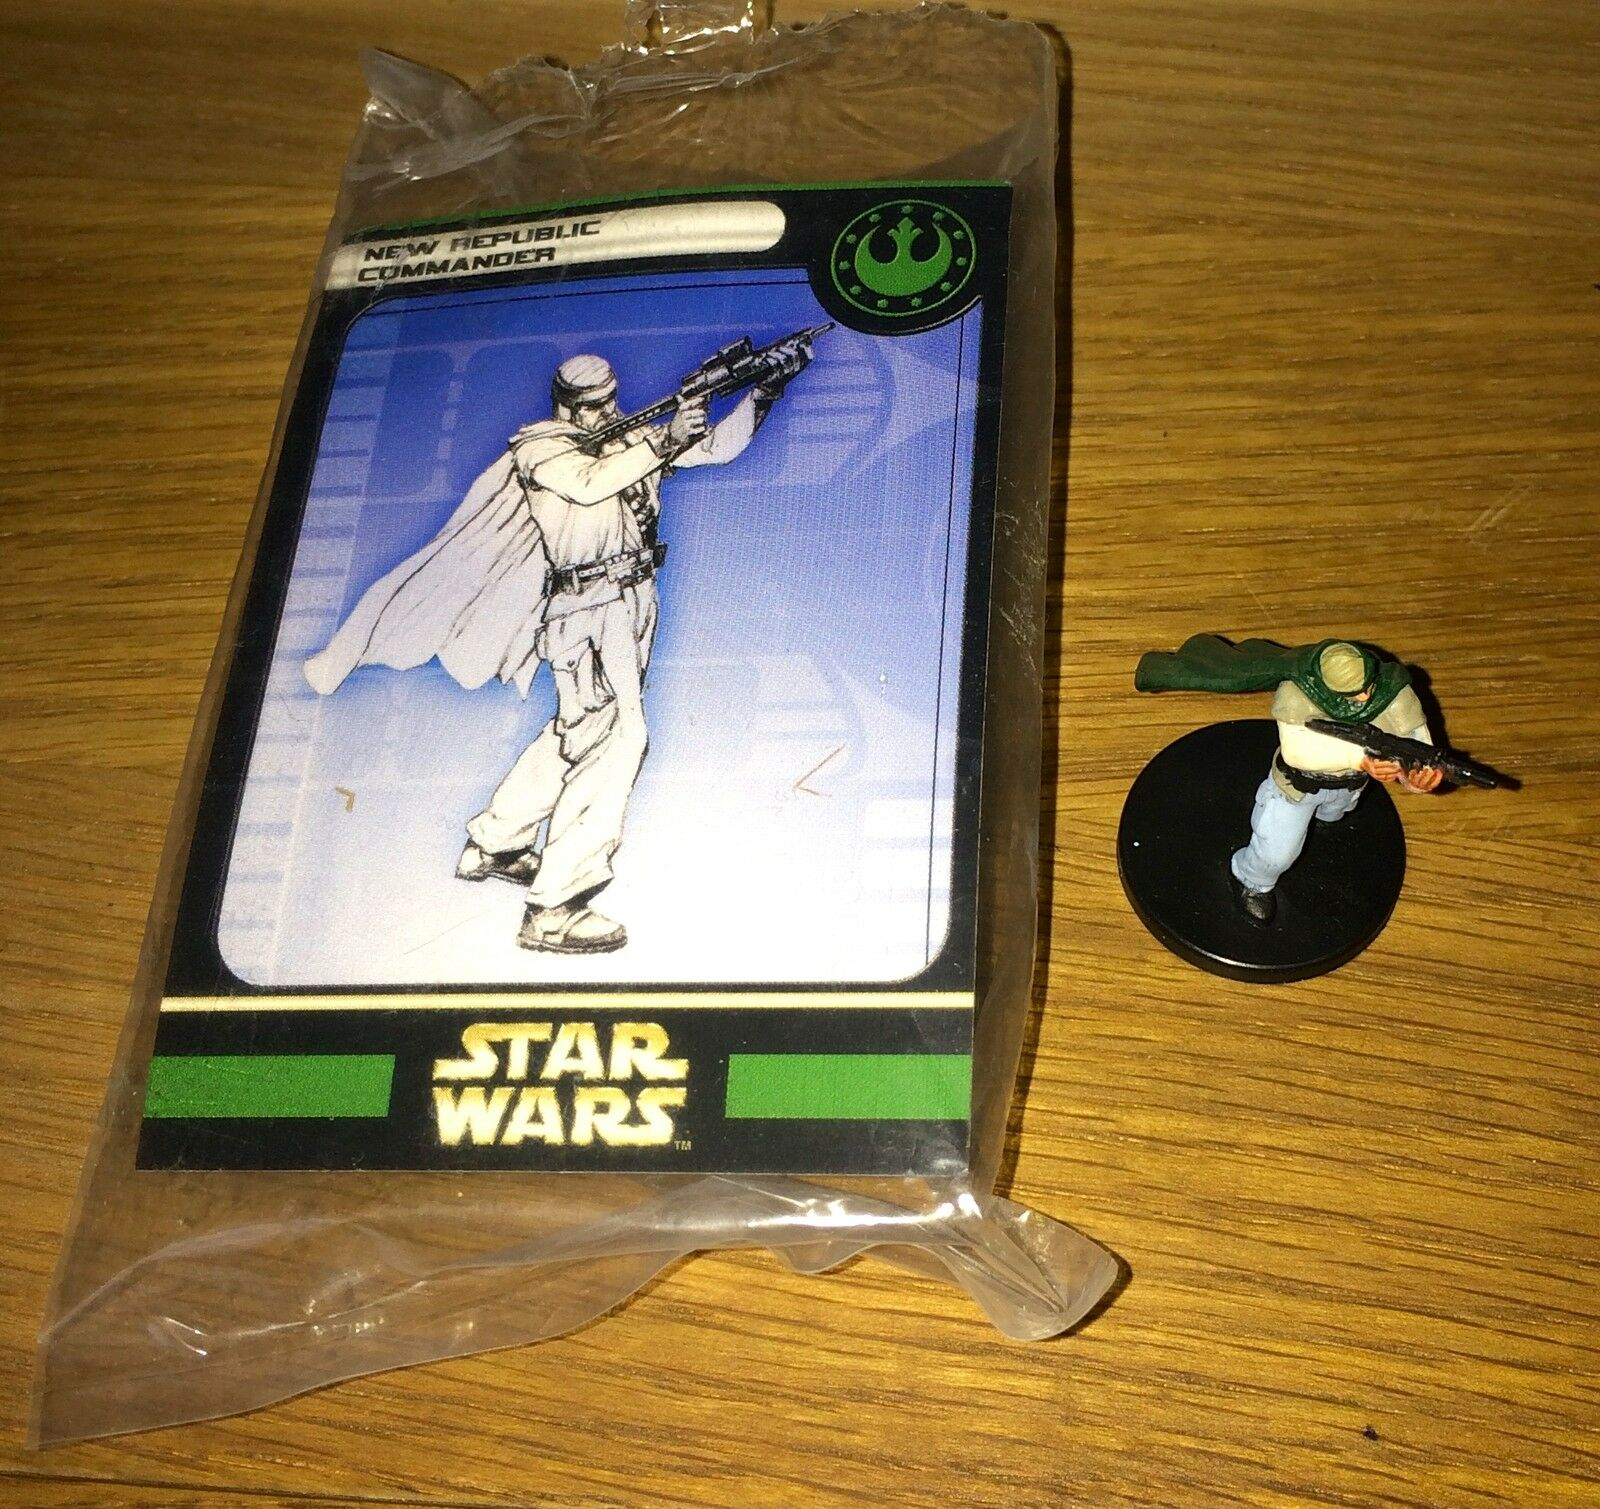 Star Wars Miniatures New Republic Commander Promo - very scarce Spain AoE 2006